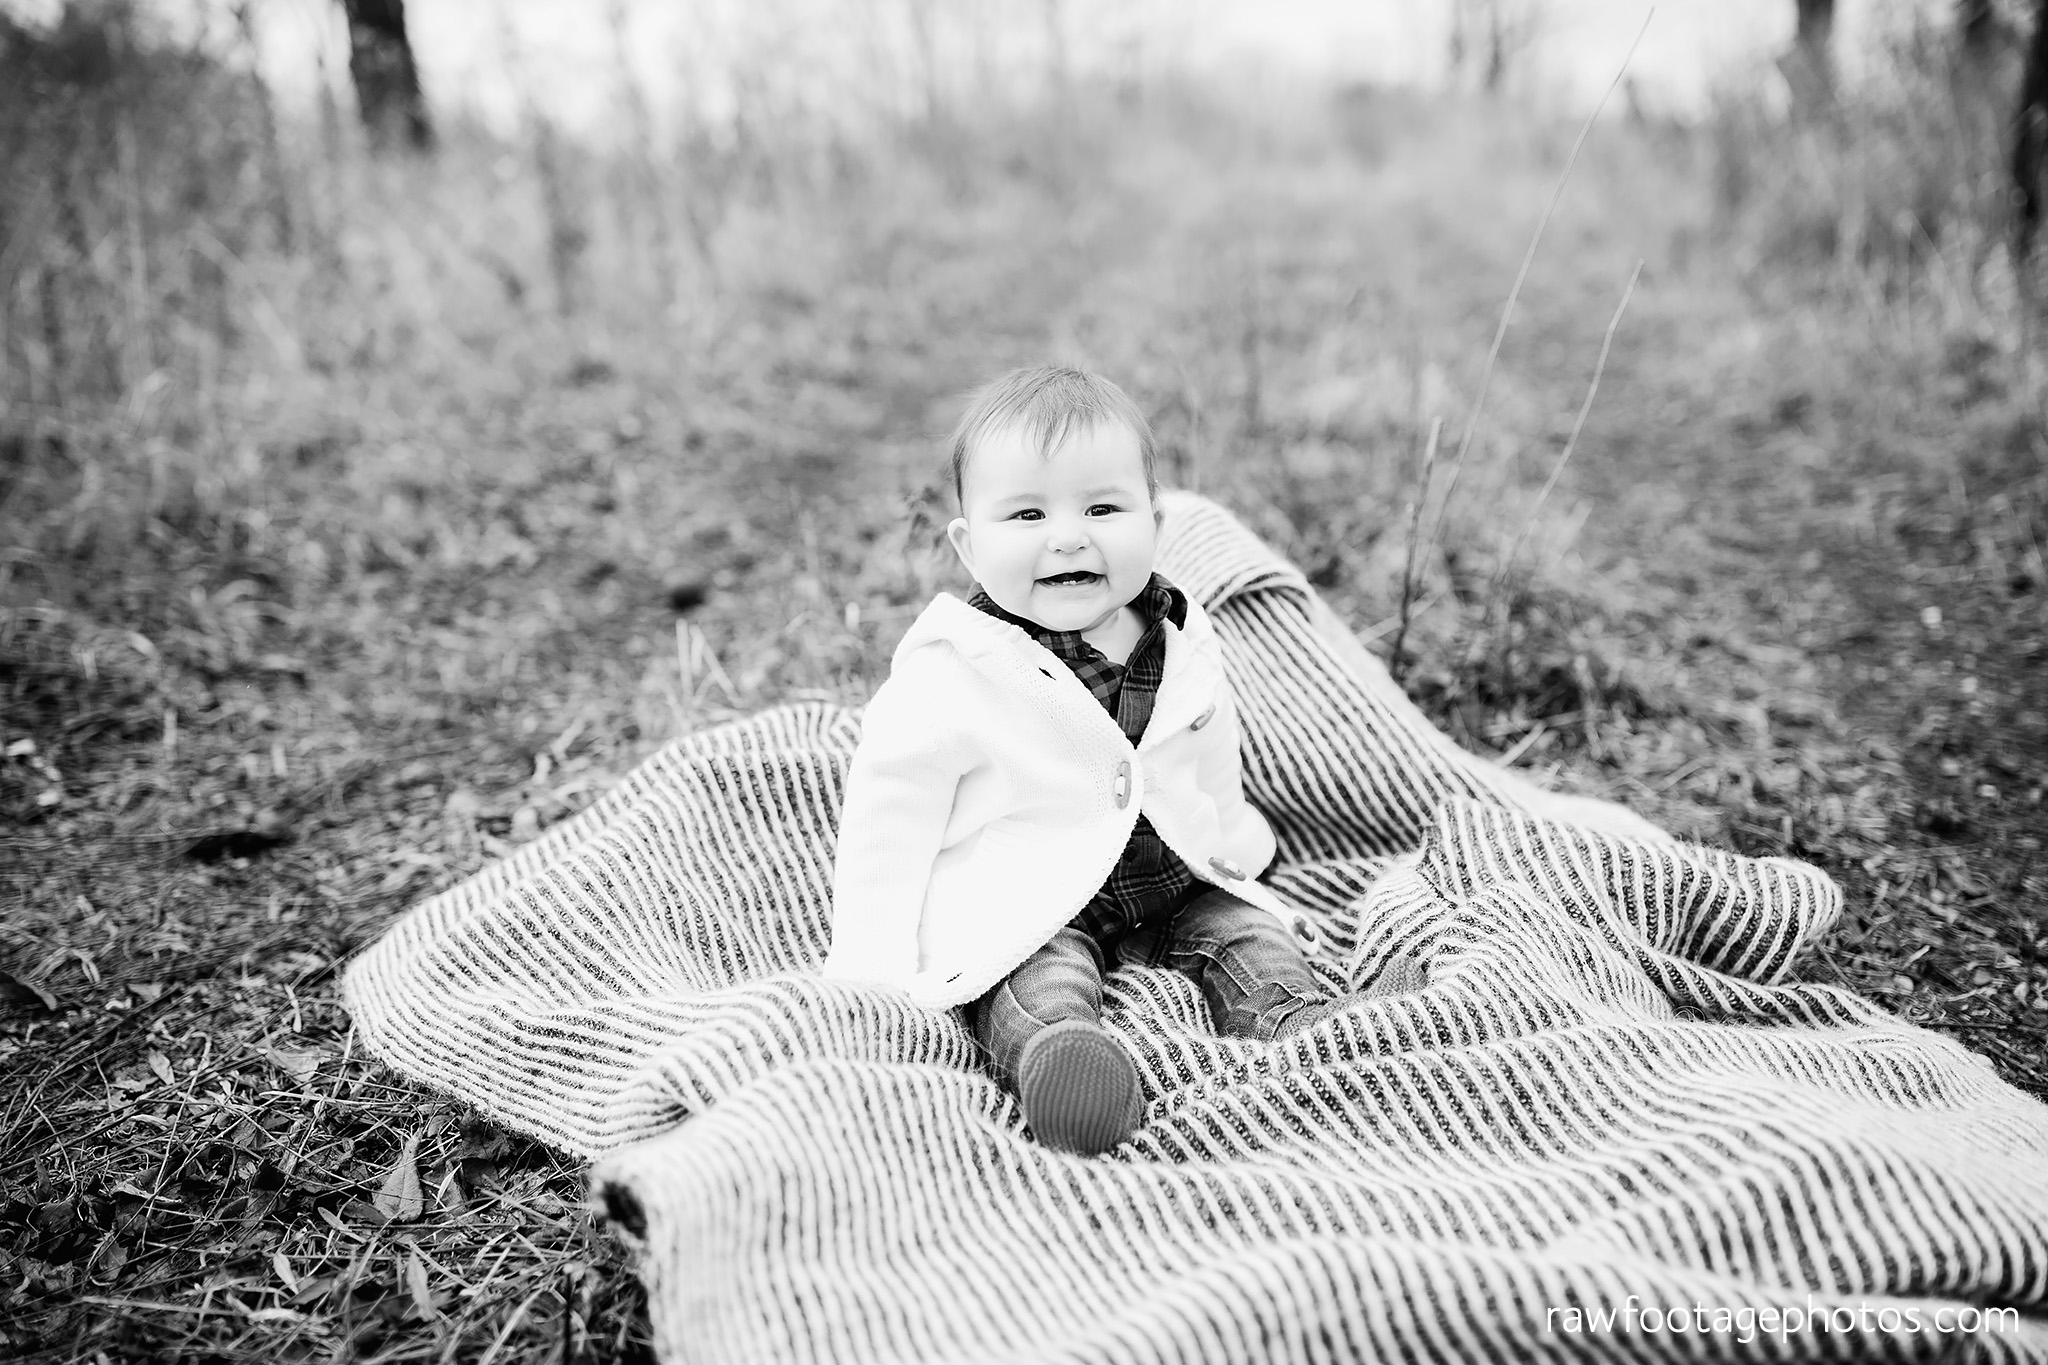 london_ontario_family_session_greenhouse-train_bridge-baby_girl-dog-raw_footage_photography013.jpg